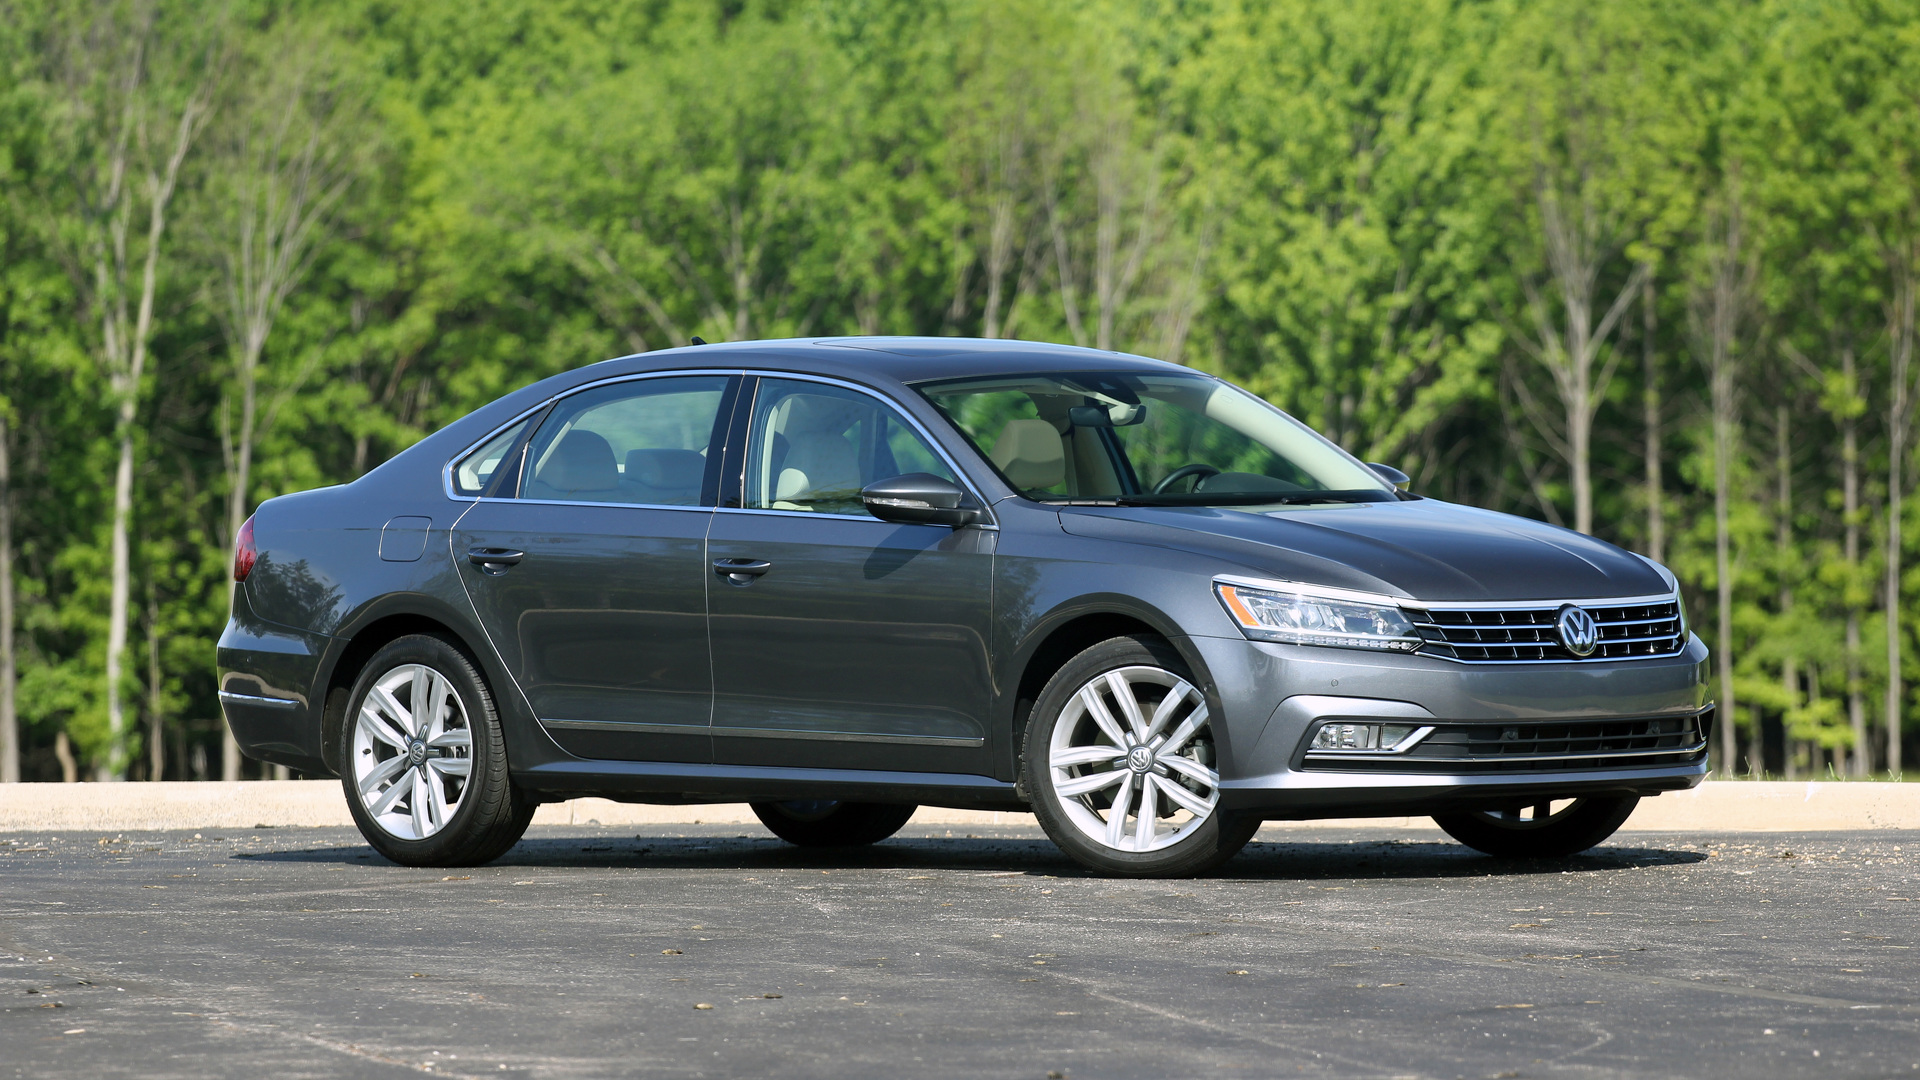 Review: 2016 Volkswagen Passat V6